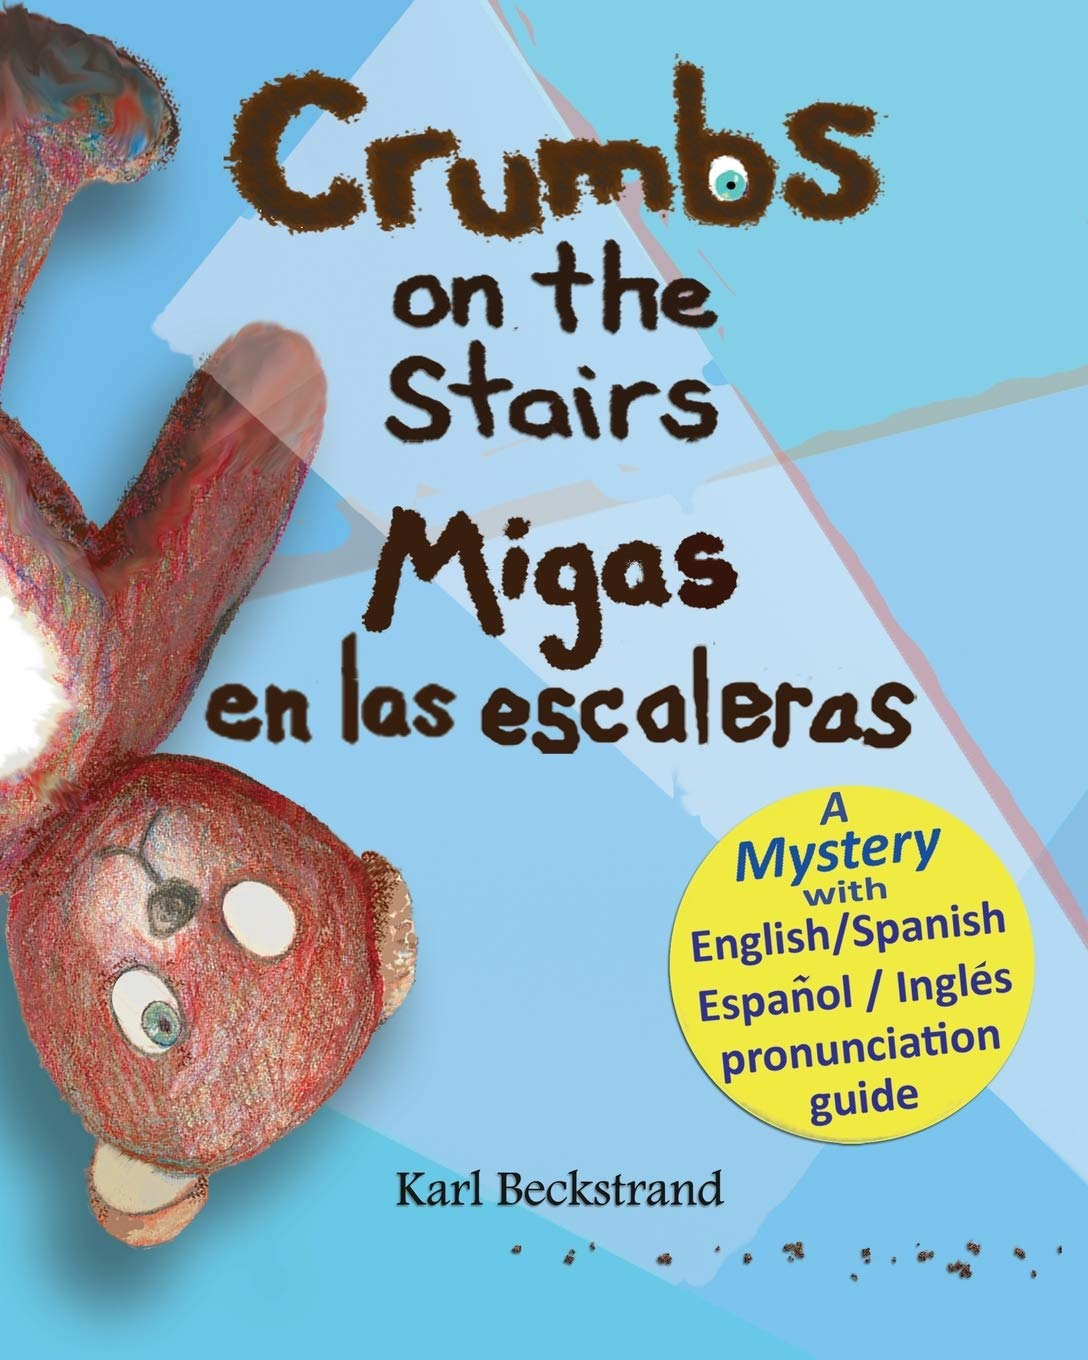 Crumbs On The Stairs Migas En Las Escaleras A Mystery In English Spanish Mini Mysteries For Minors Volume 2 9780977606597 Beckstrand Karl Beckstrand Karl Books